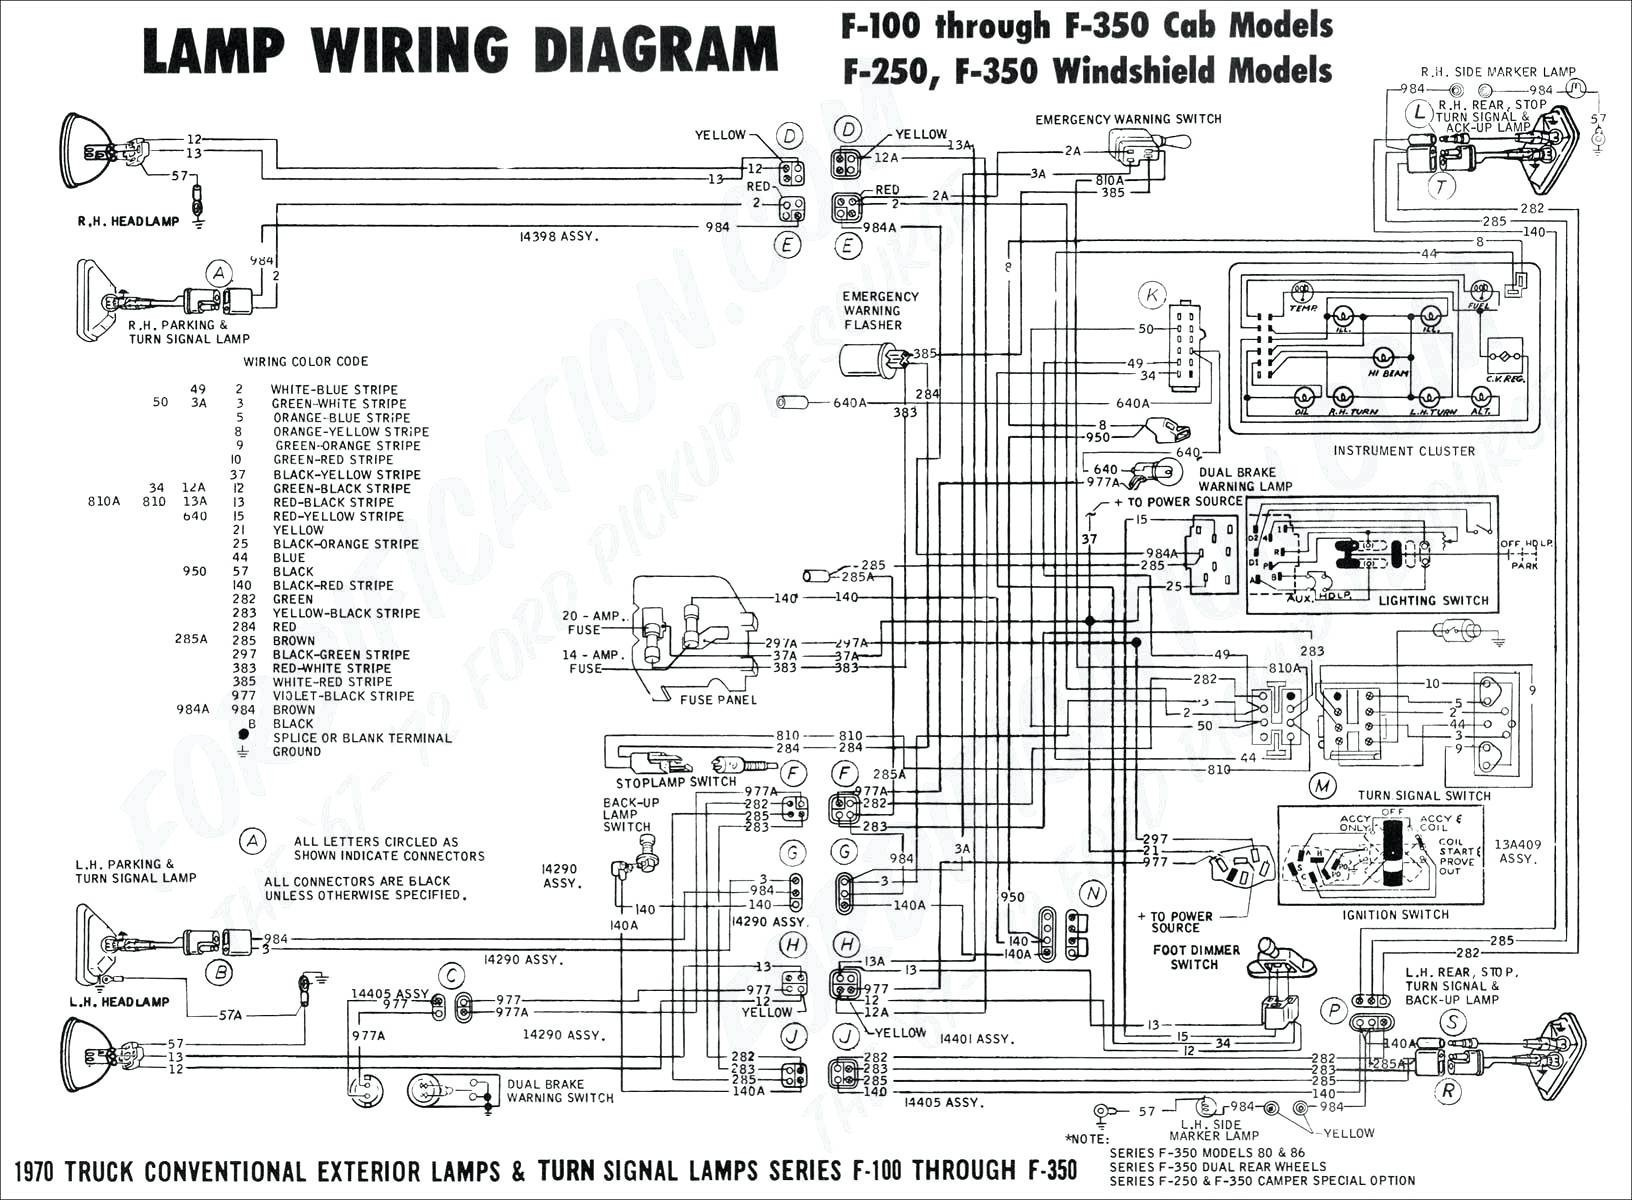 Free Wiring Diagrams for Dodge Trucks Dodge Truck Wiring Diagram Free Wiring Diagram toolbox Of Free Wiring Diagrams for Dodge Trucks